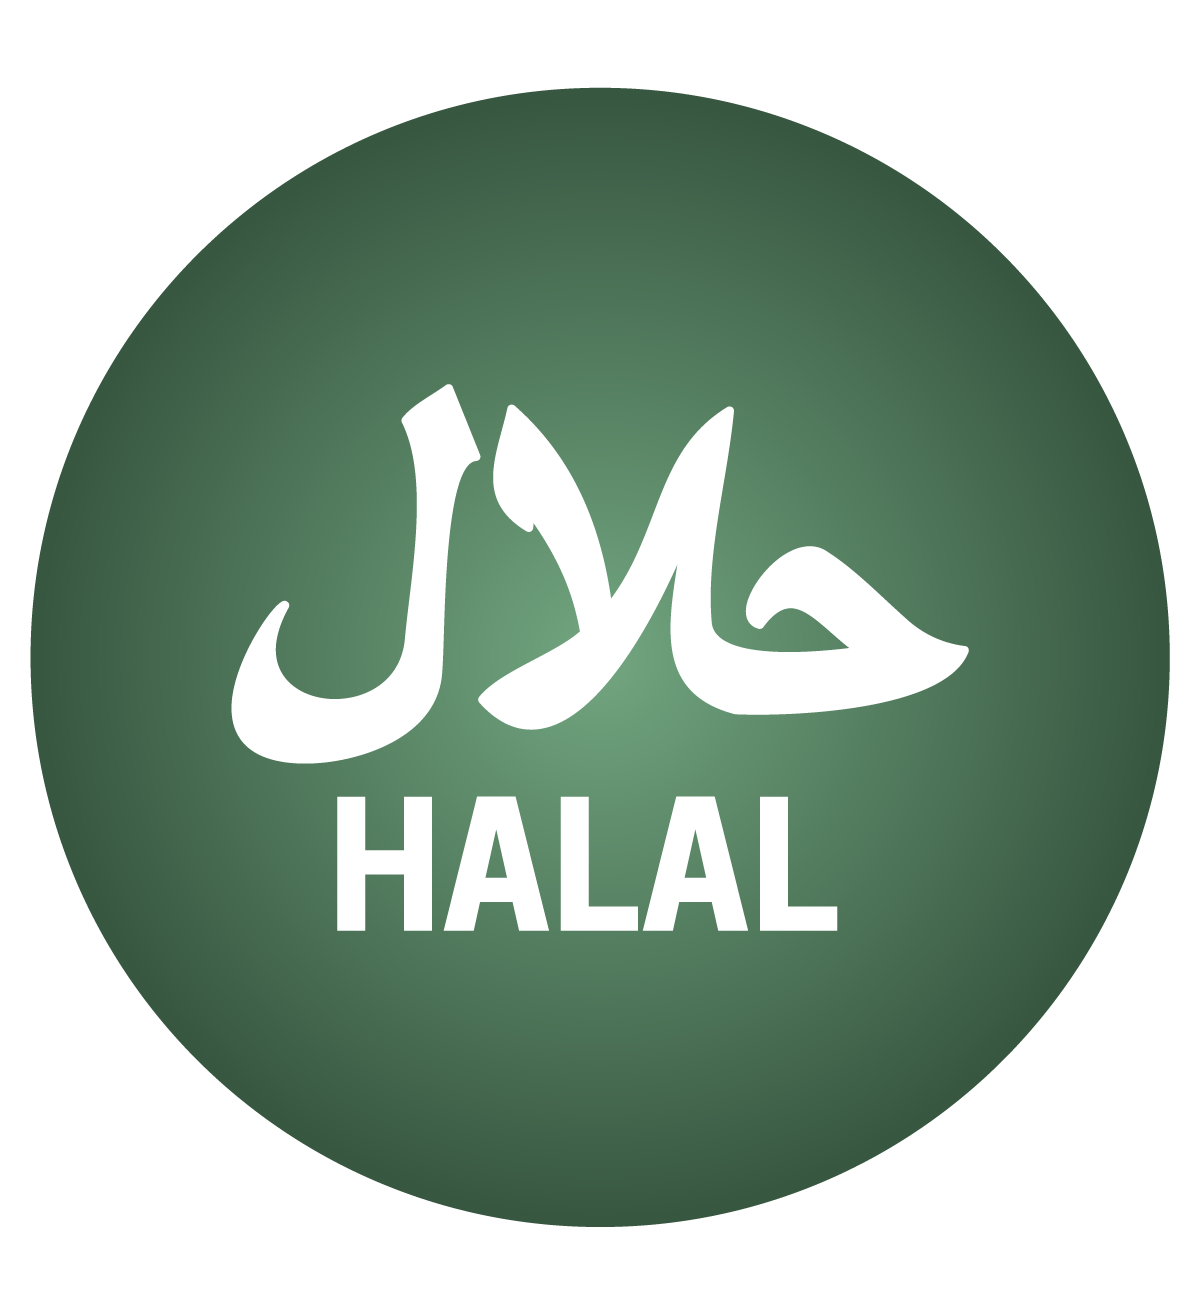 HALAL Inspected Facility - Northwest Cosmetic Labs has been inspected as a facility that manufactures products that are acceptable for use per Islamic Law.